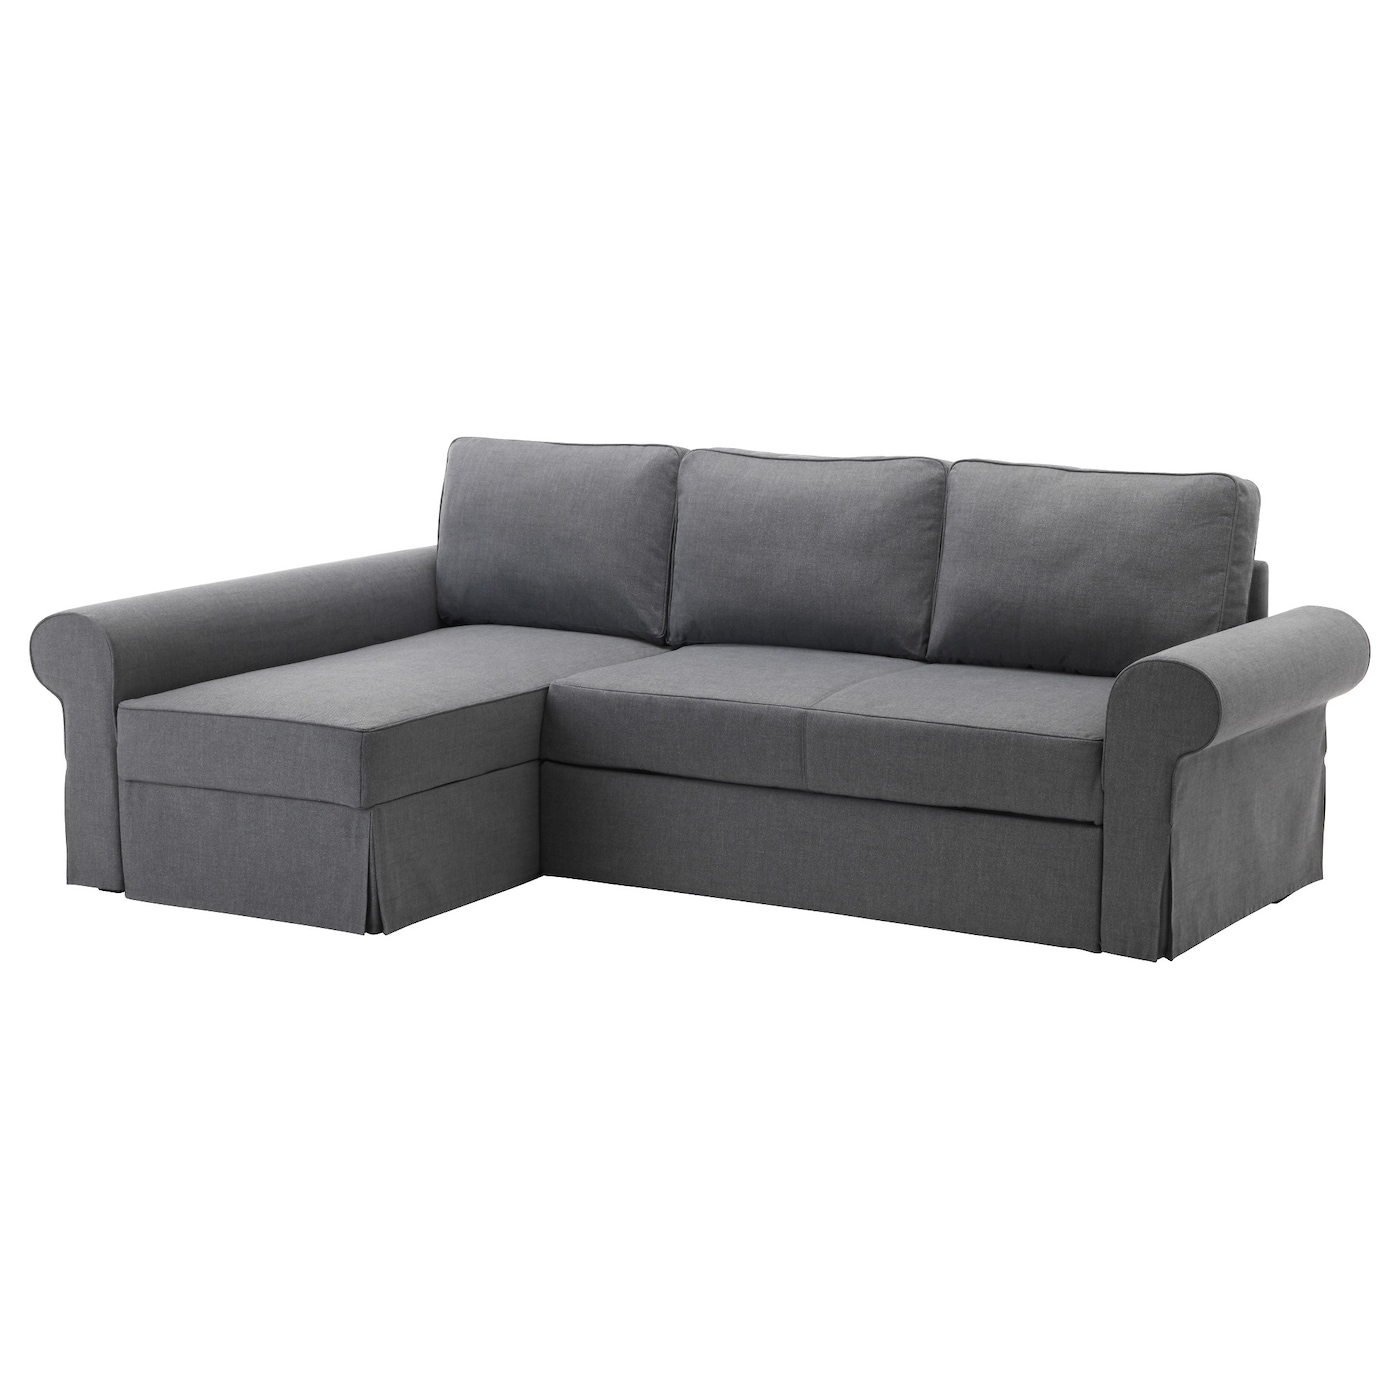 Backabro sofa bed with chaise longue nordvalla dark grey for Chaise longue style sofa